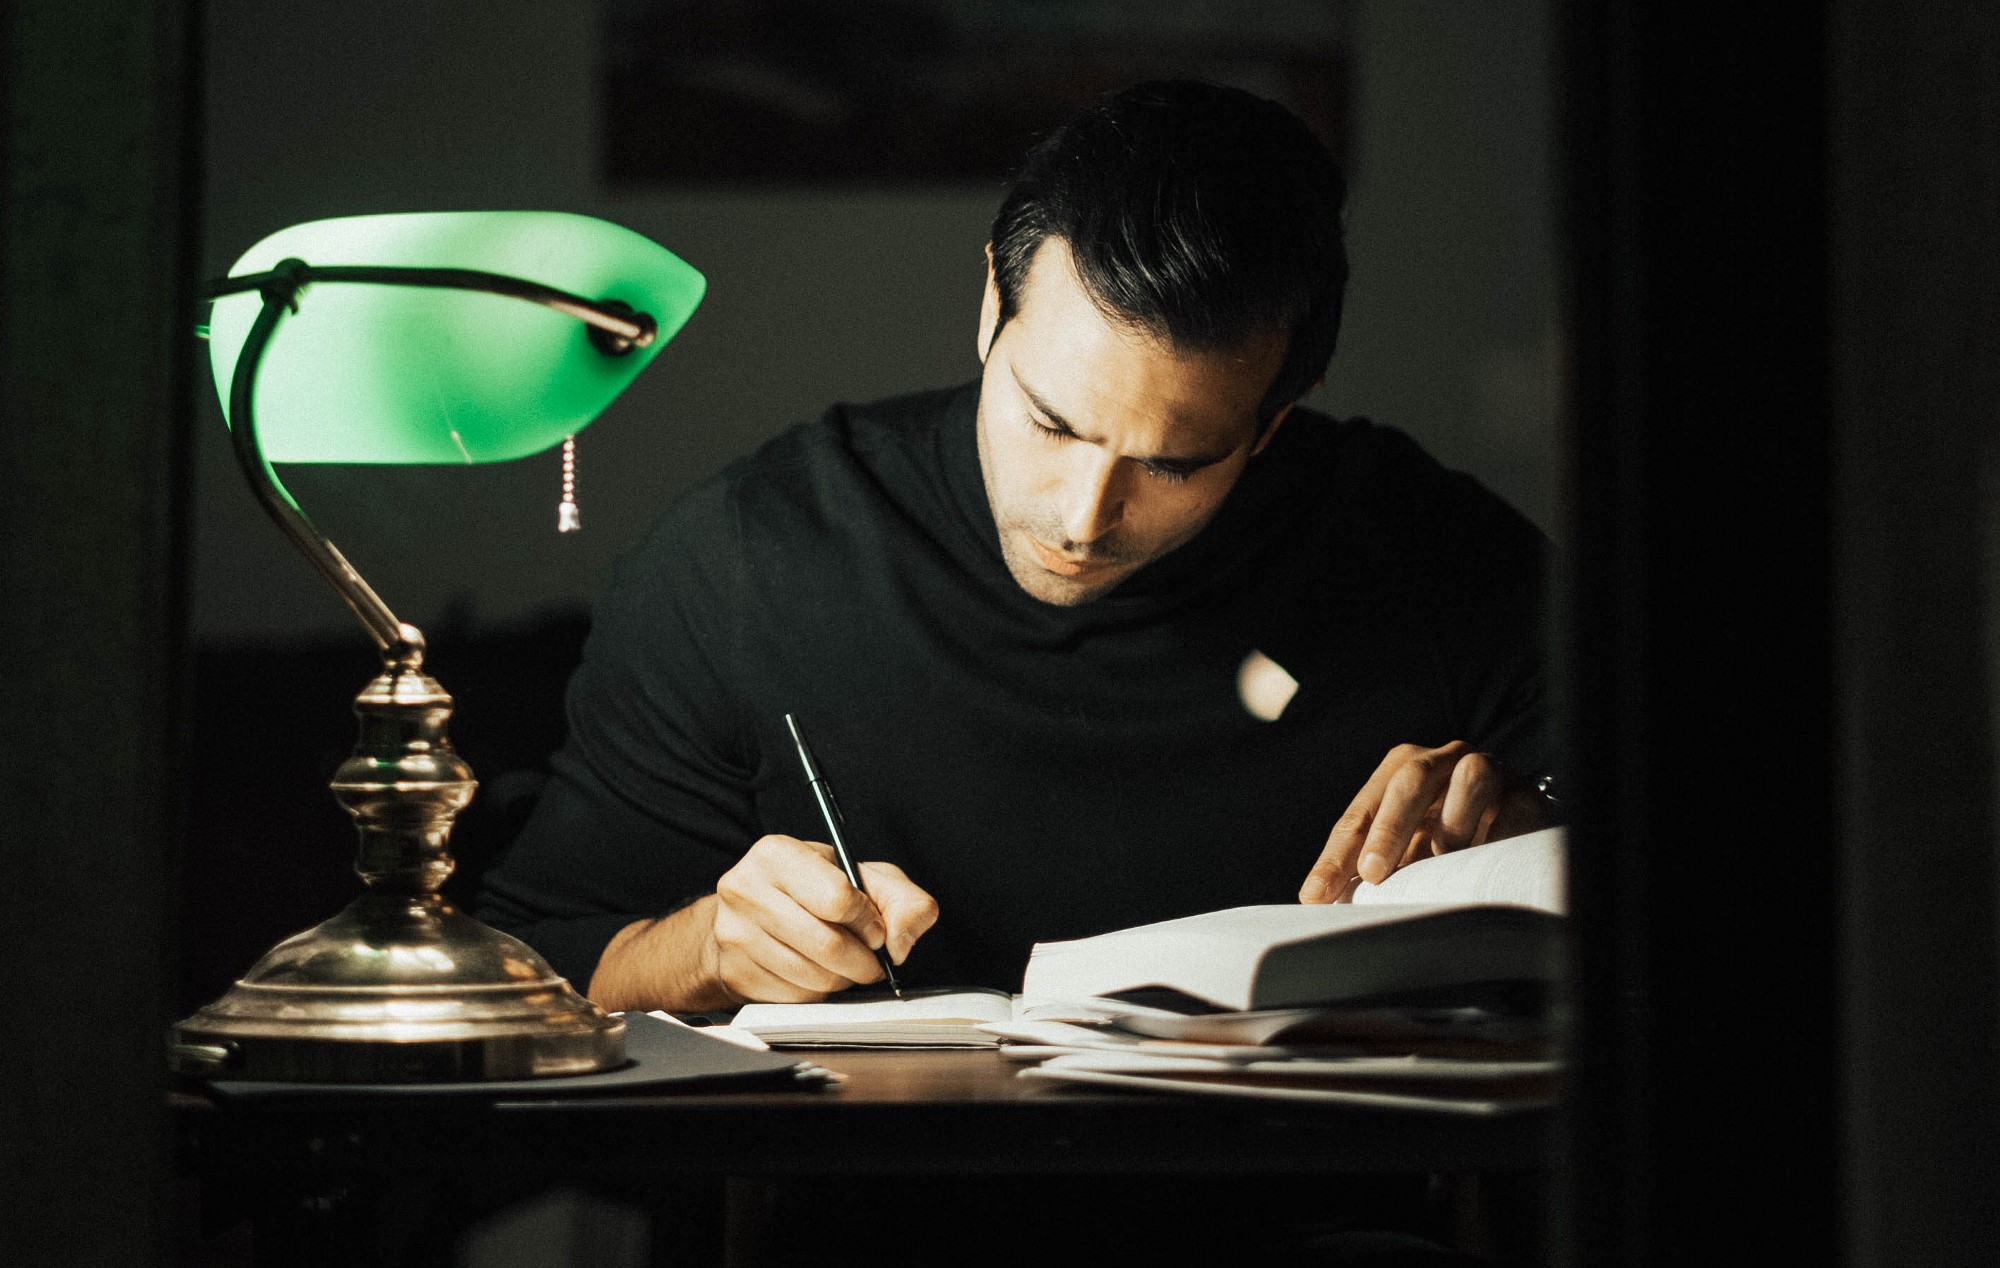 Handsome man writing on a desk